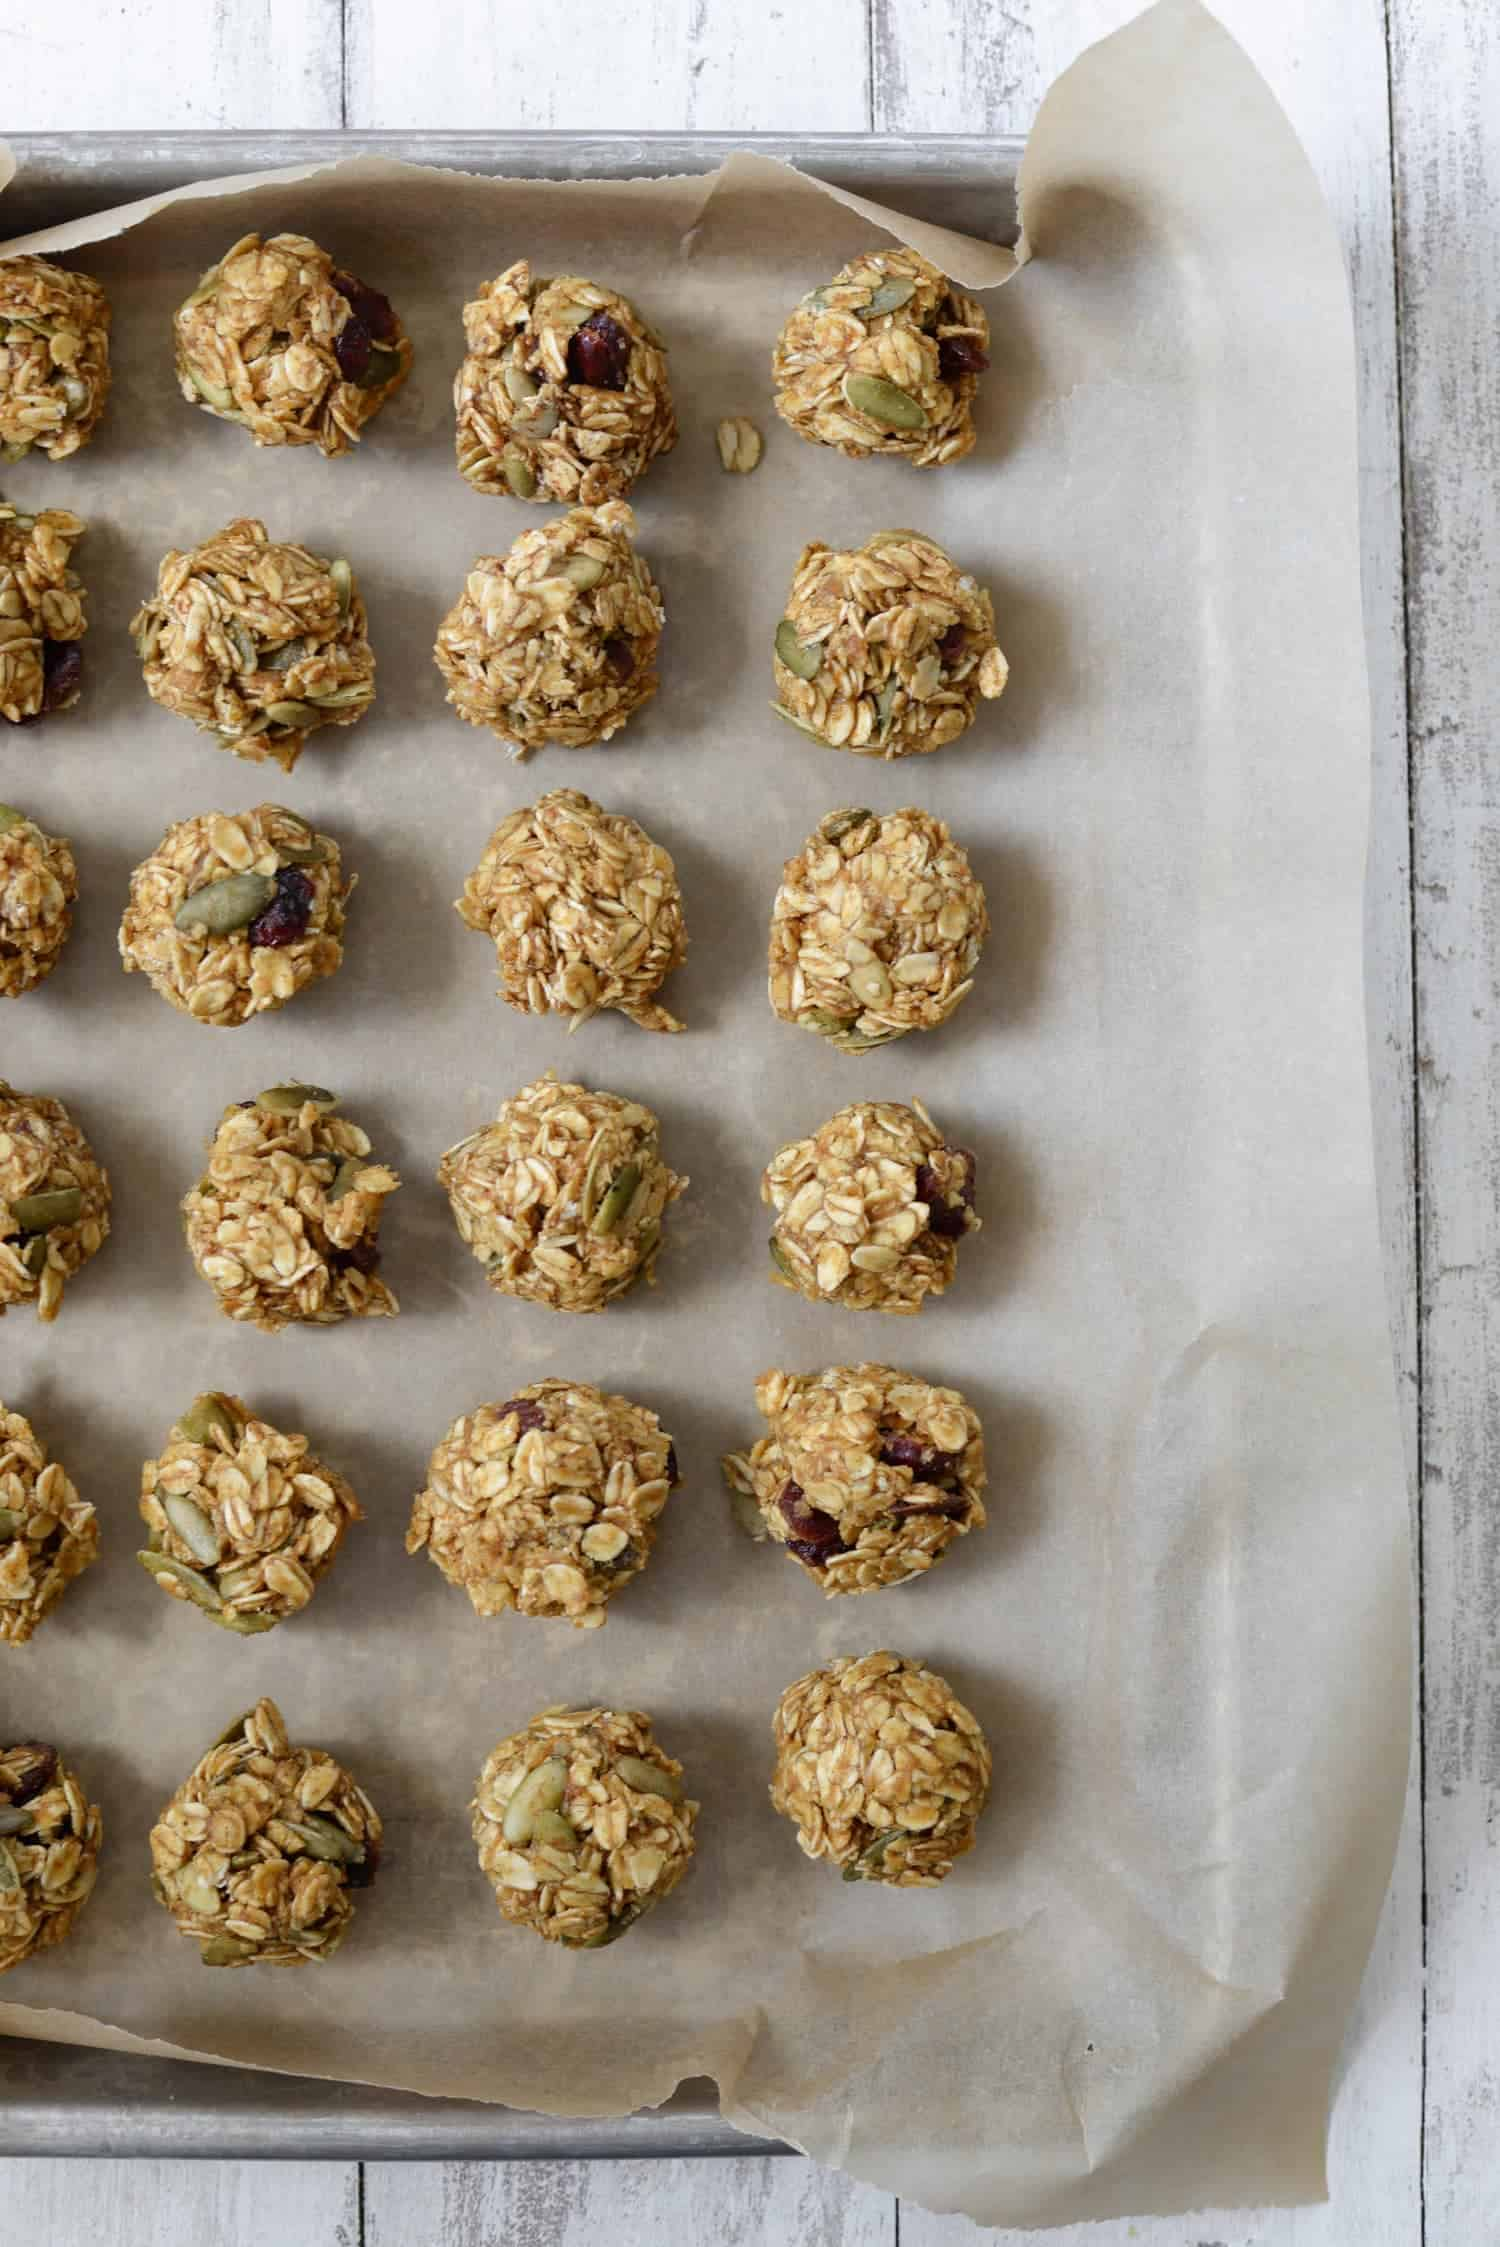 Pumpkin Cranberry Energy Bites! Looking for a healthy pumpkin treat? This is it! Rolled oats, dried cranberries, pepitas, pumpkin spice in a granola bar bite form. Gluten-Free and easily vegan. | www.delishknowledge.com